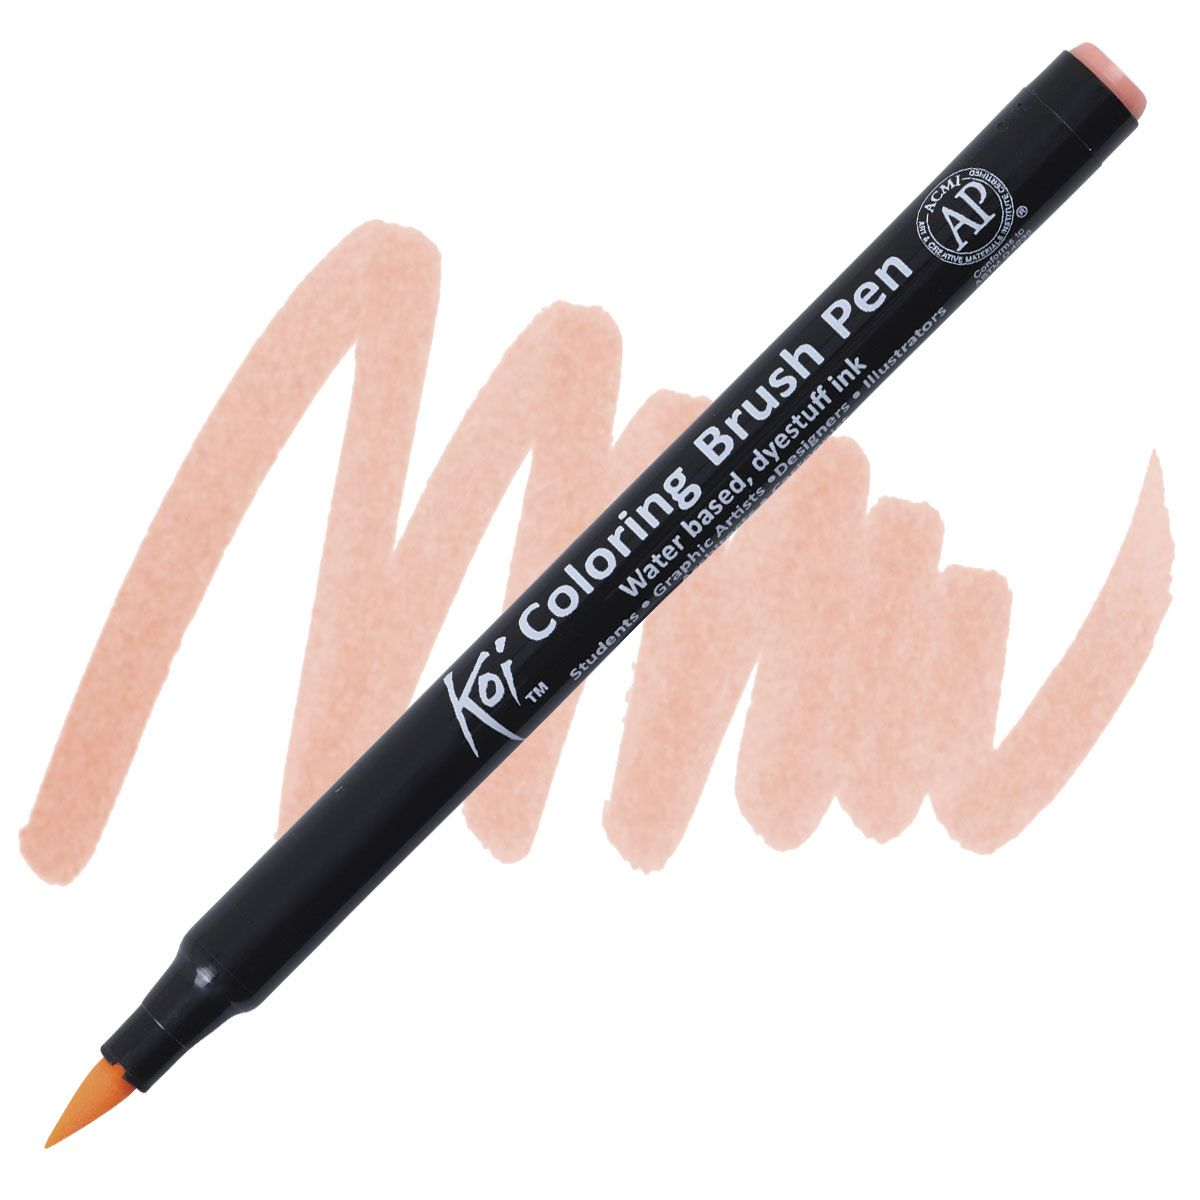 Where To Buy Coloring Brush Pen